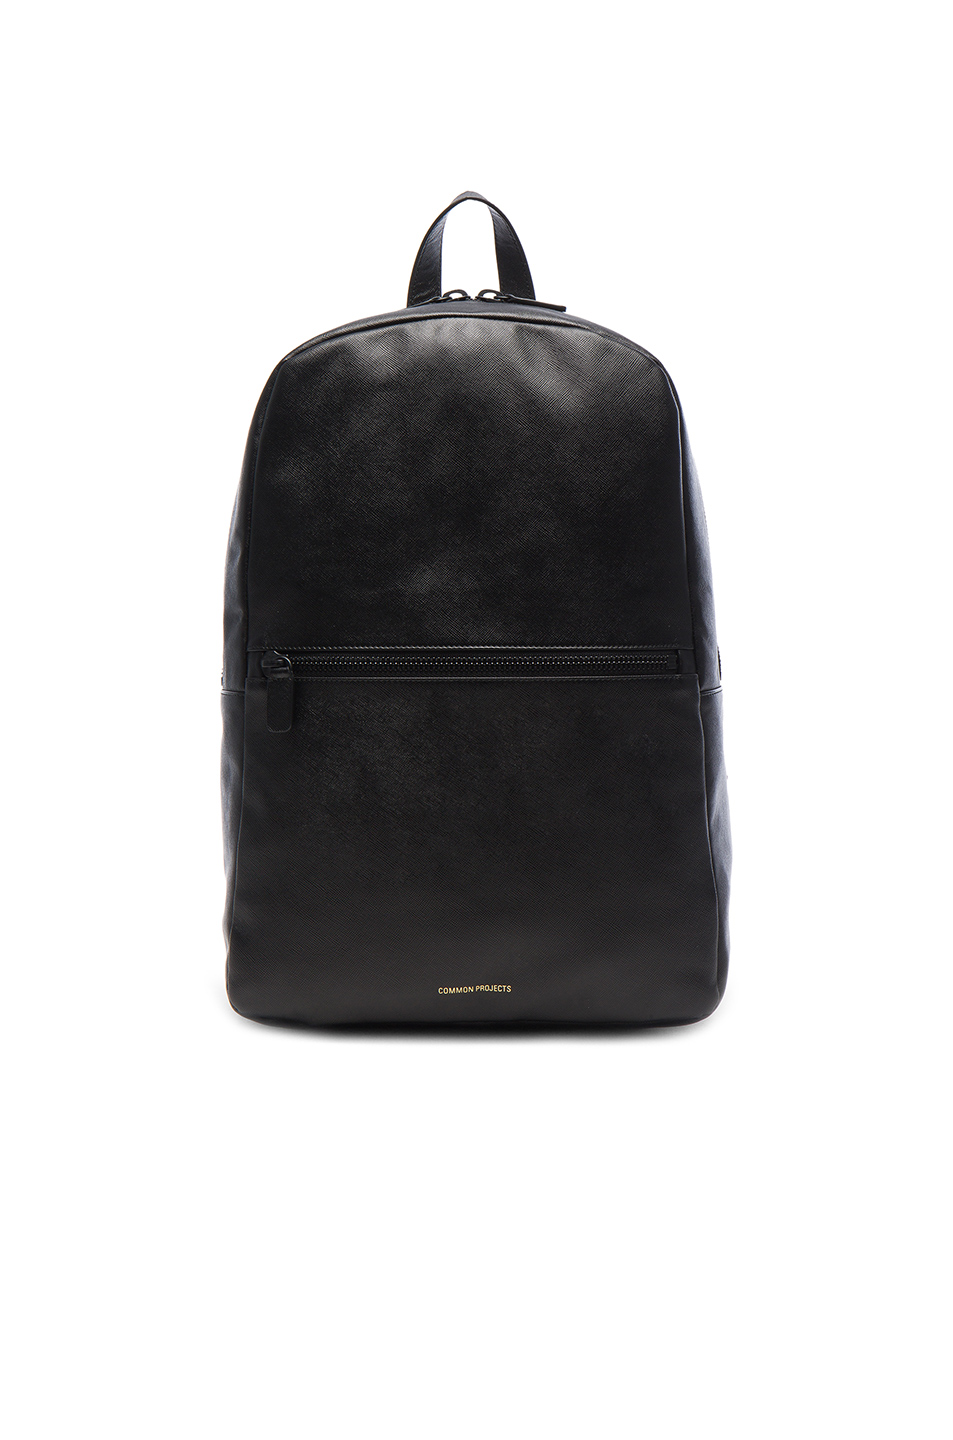 Common Projects Simple Backpack in Black